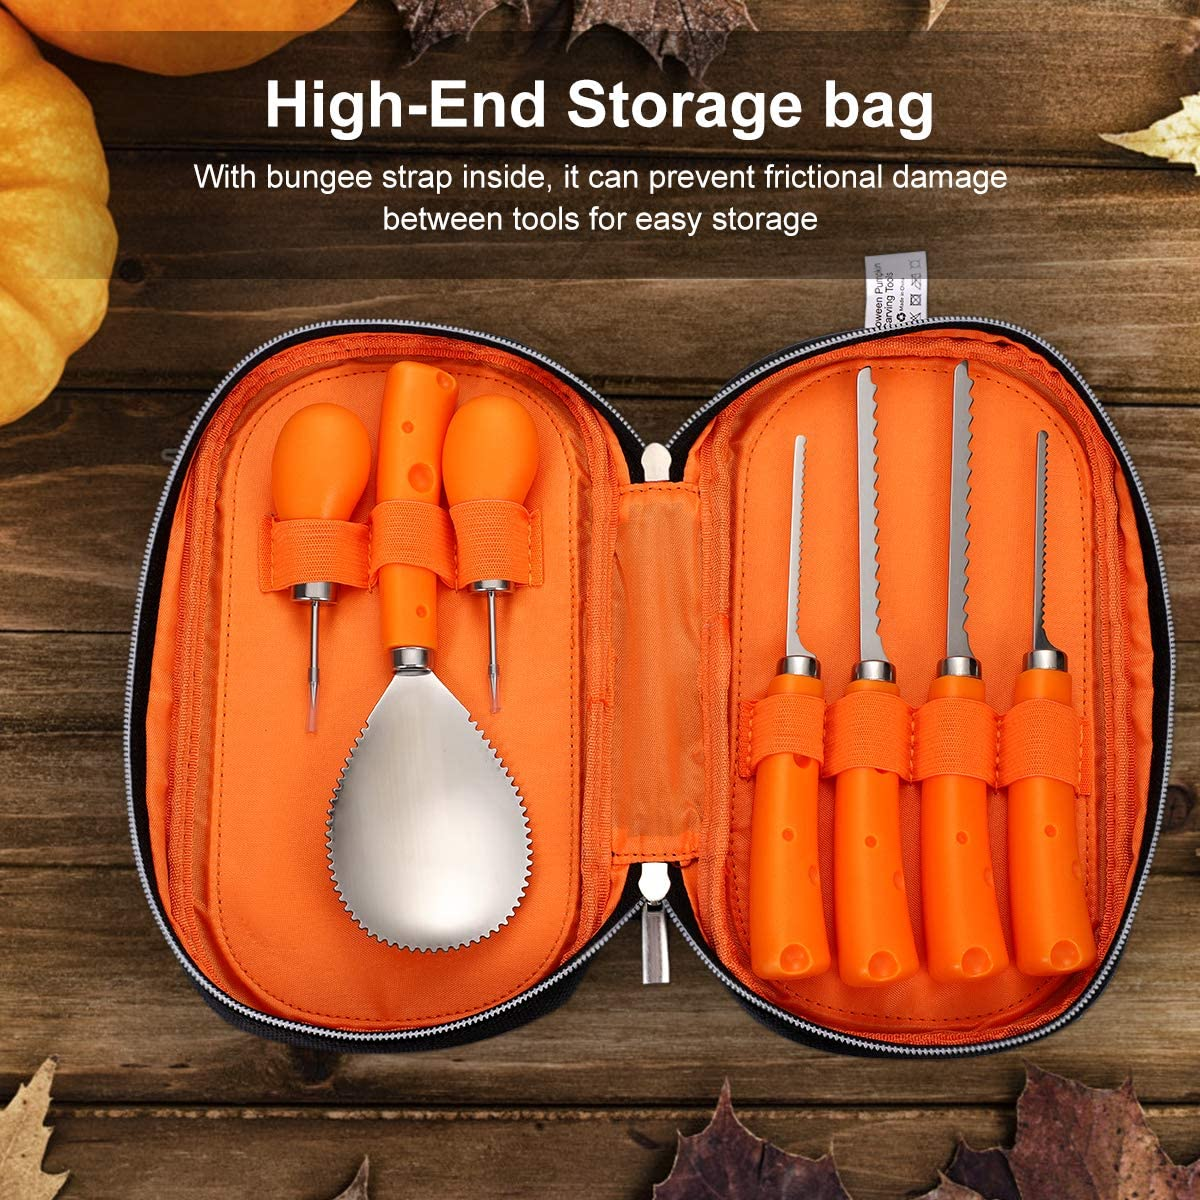 Halloween Pumpkin Carving Tools Kit, 7Pcs Jack-O-Lanterns Stainless Steel Professional Pumpkin Cutting Tools